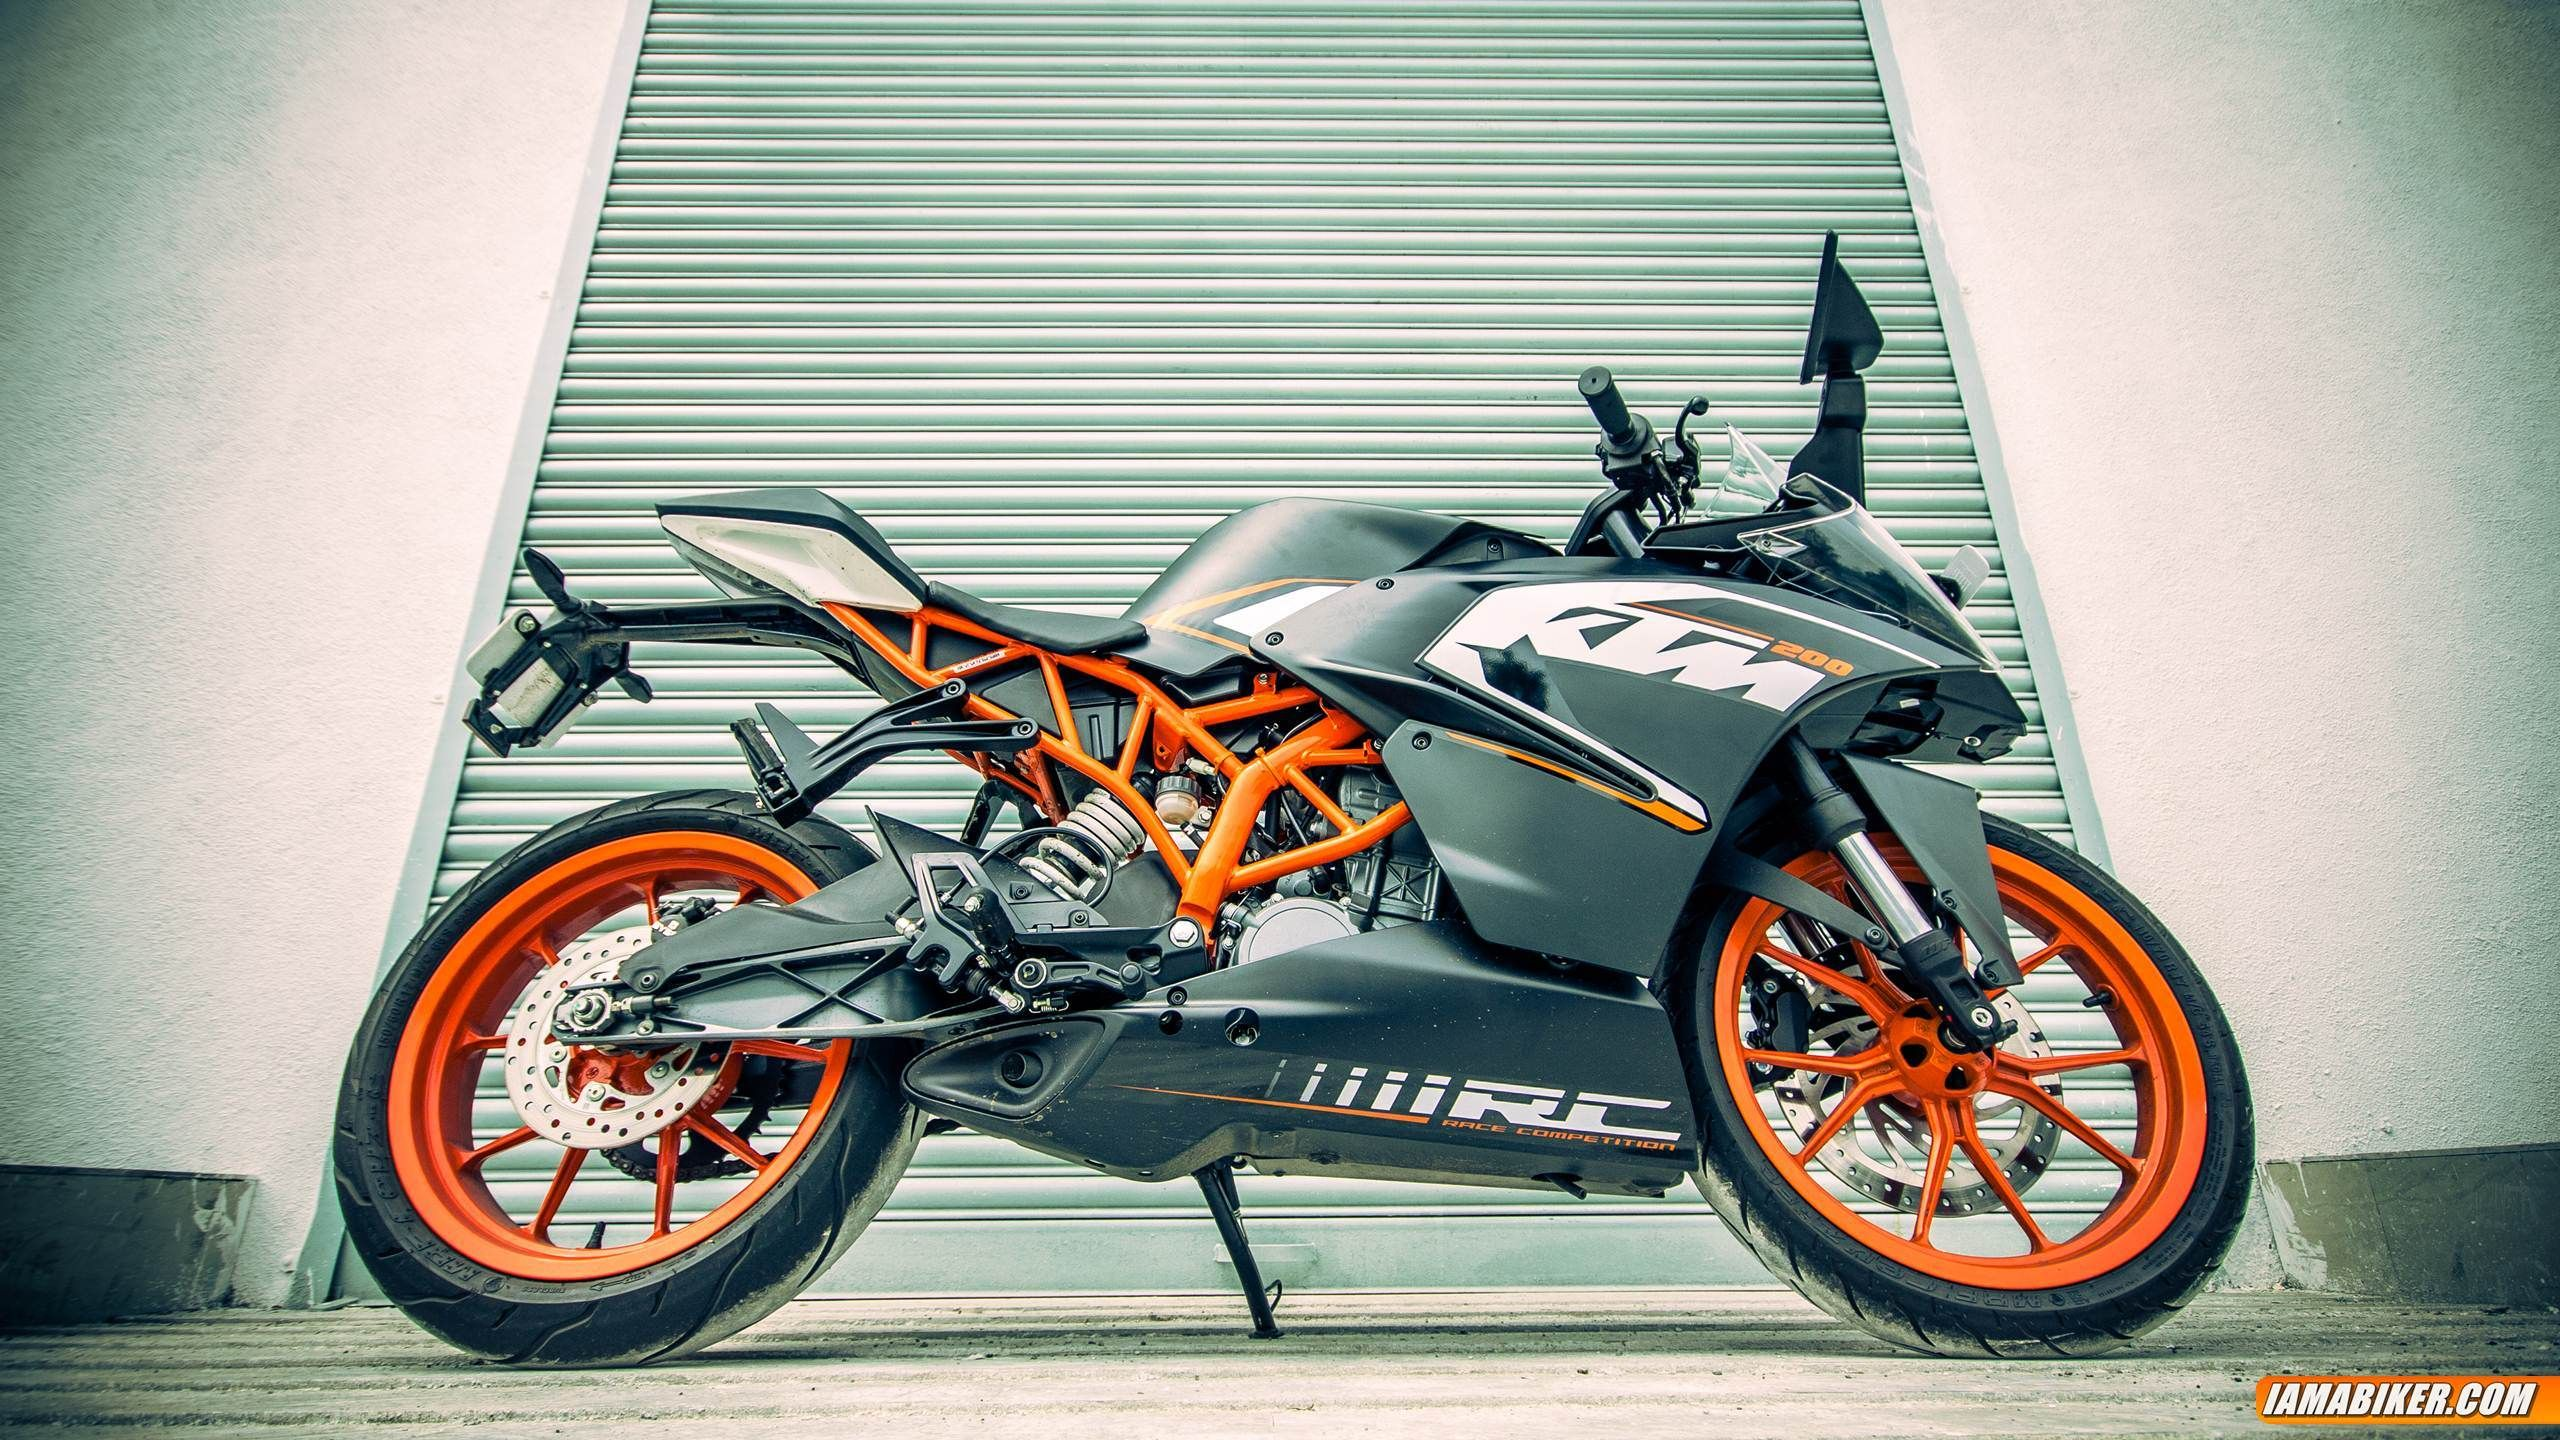 Ktm Rc200 Review First Ride Report Ktm Racing Bikes Ktm Rc